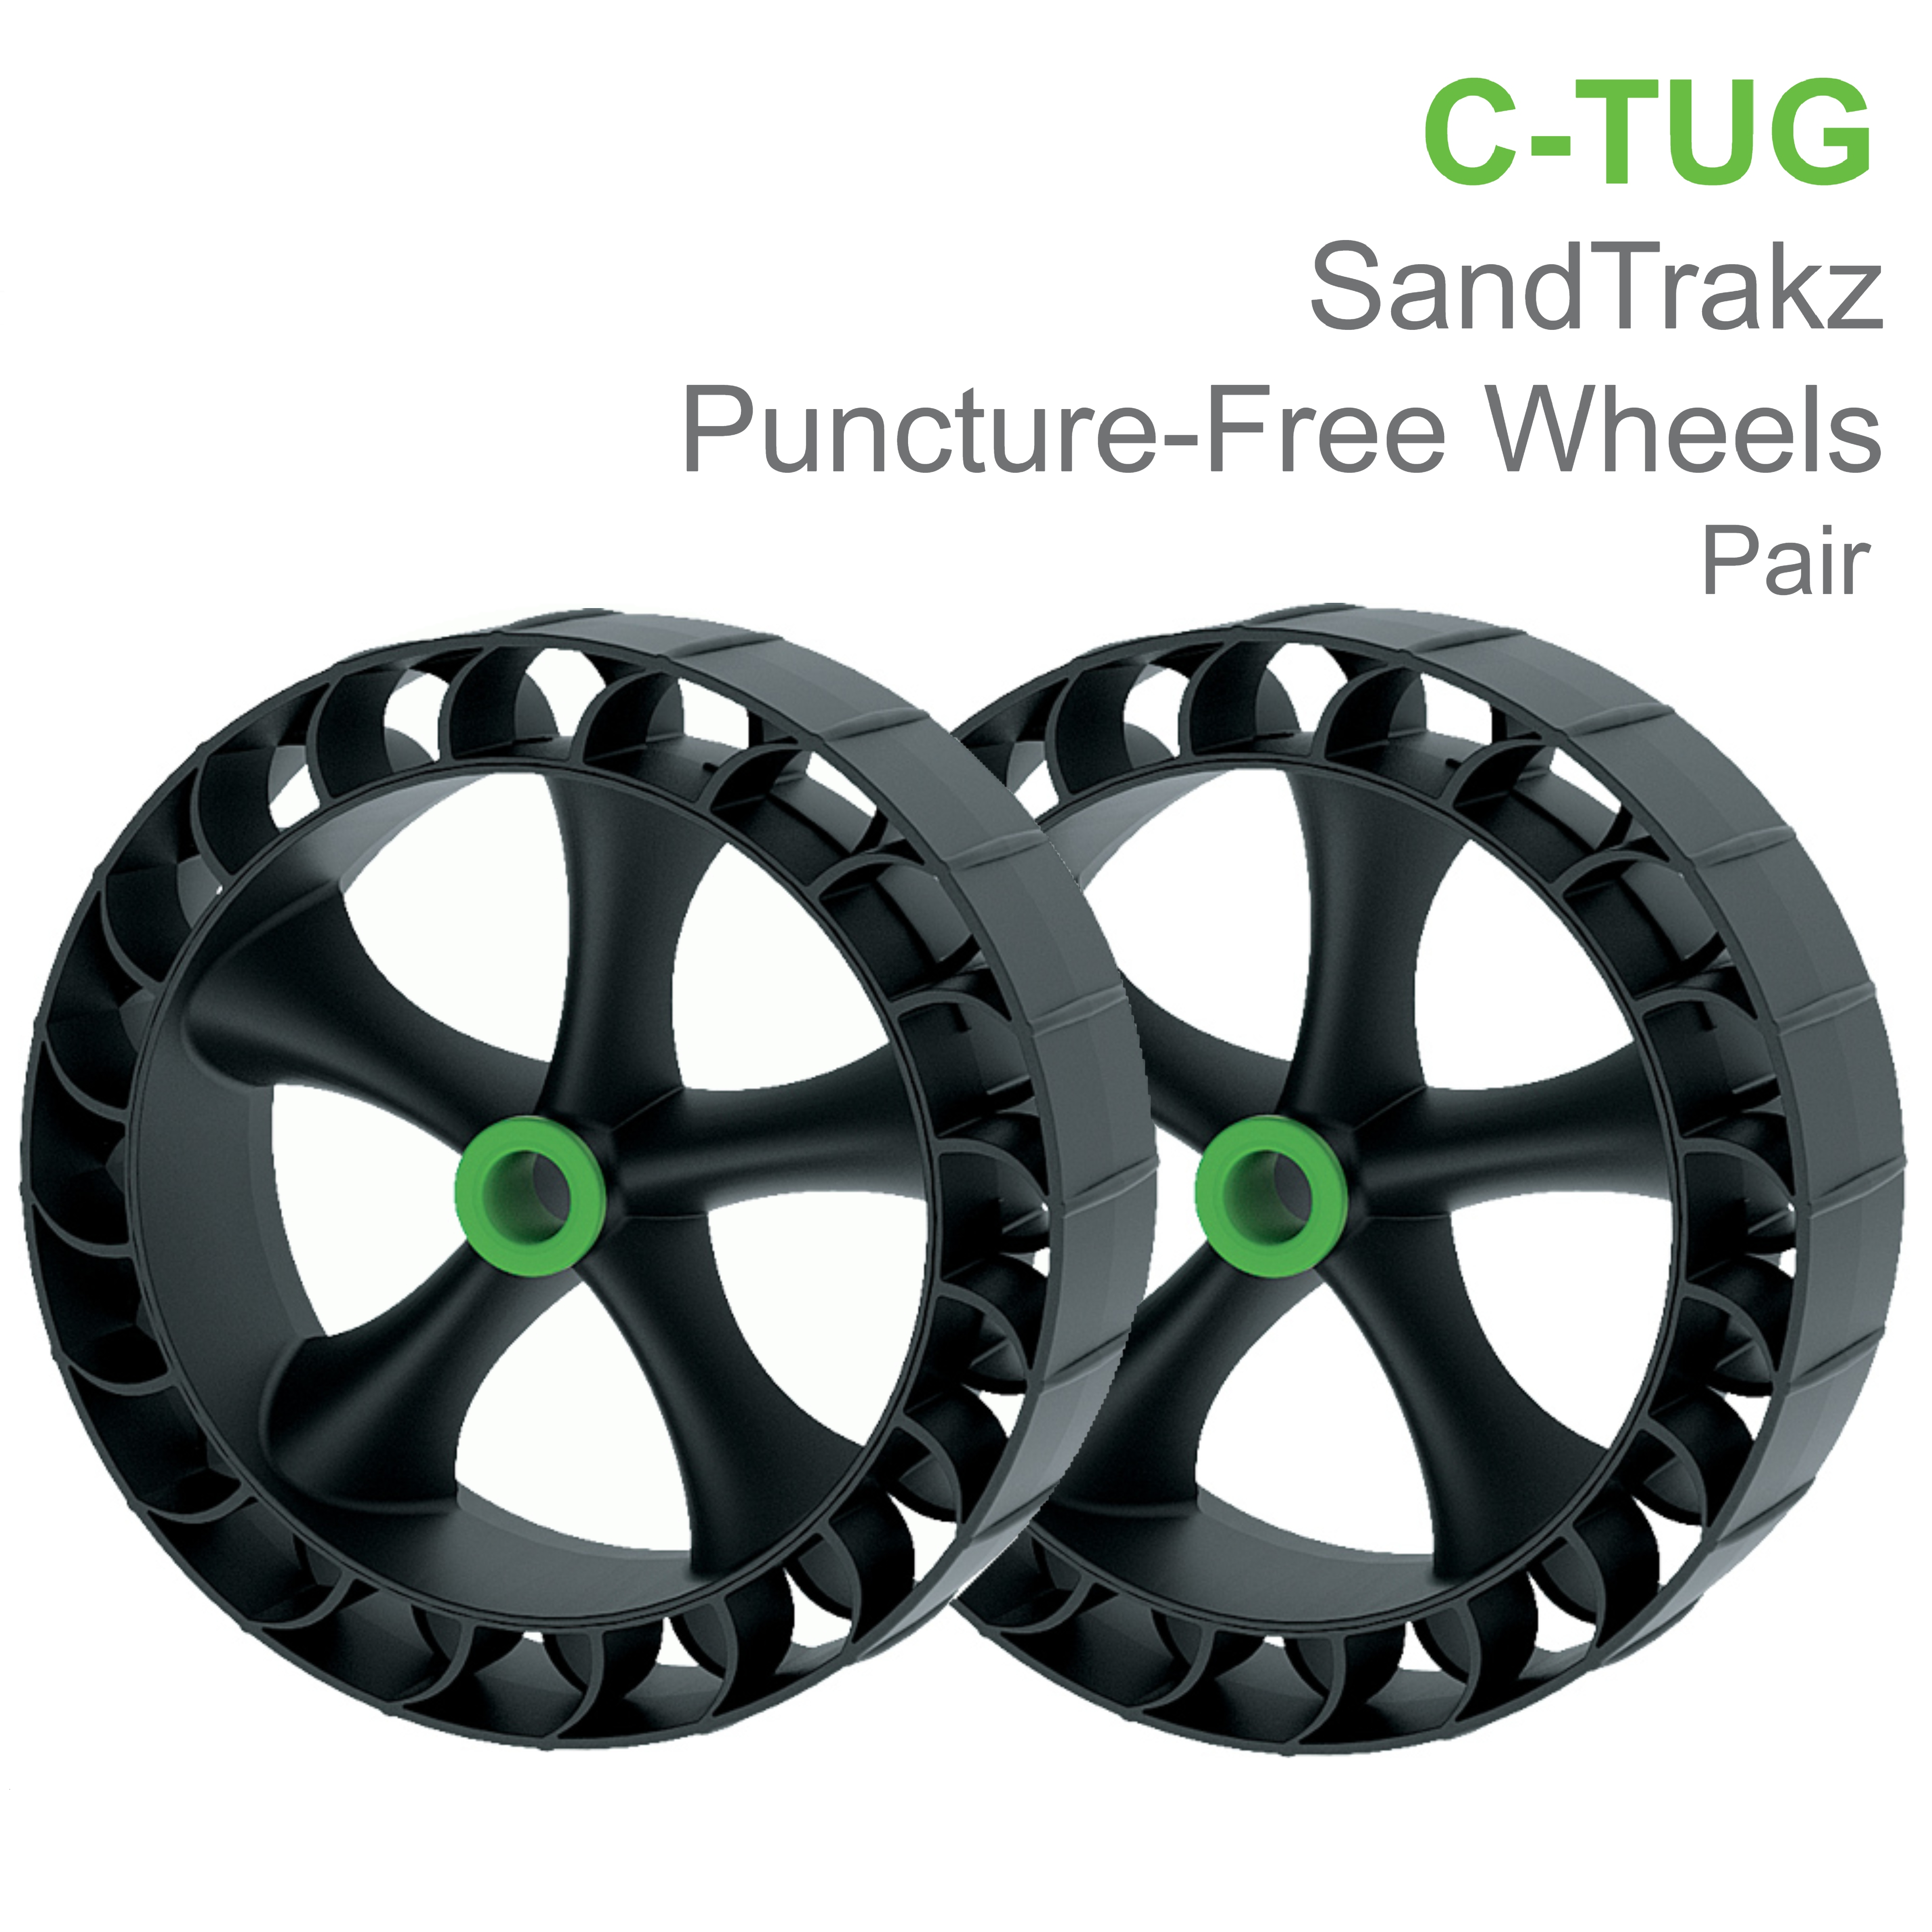 C-Tug SandTrakz Puncture-Free Wheels- Pair|Use Long Tracks|For C-TUGs|50-0005-71